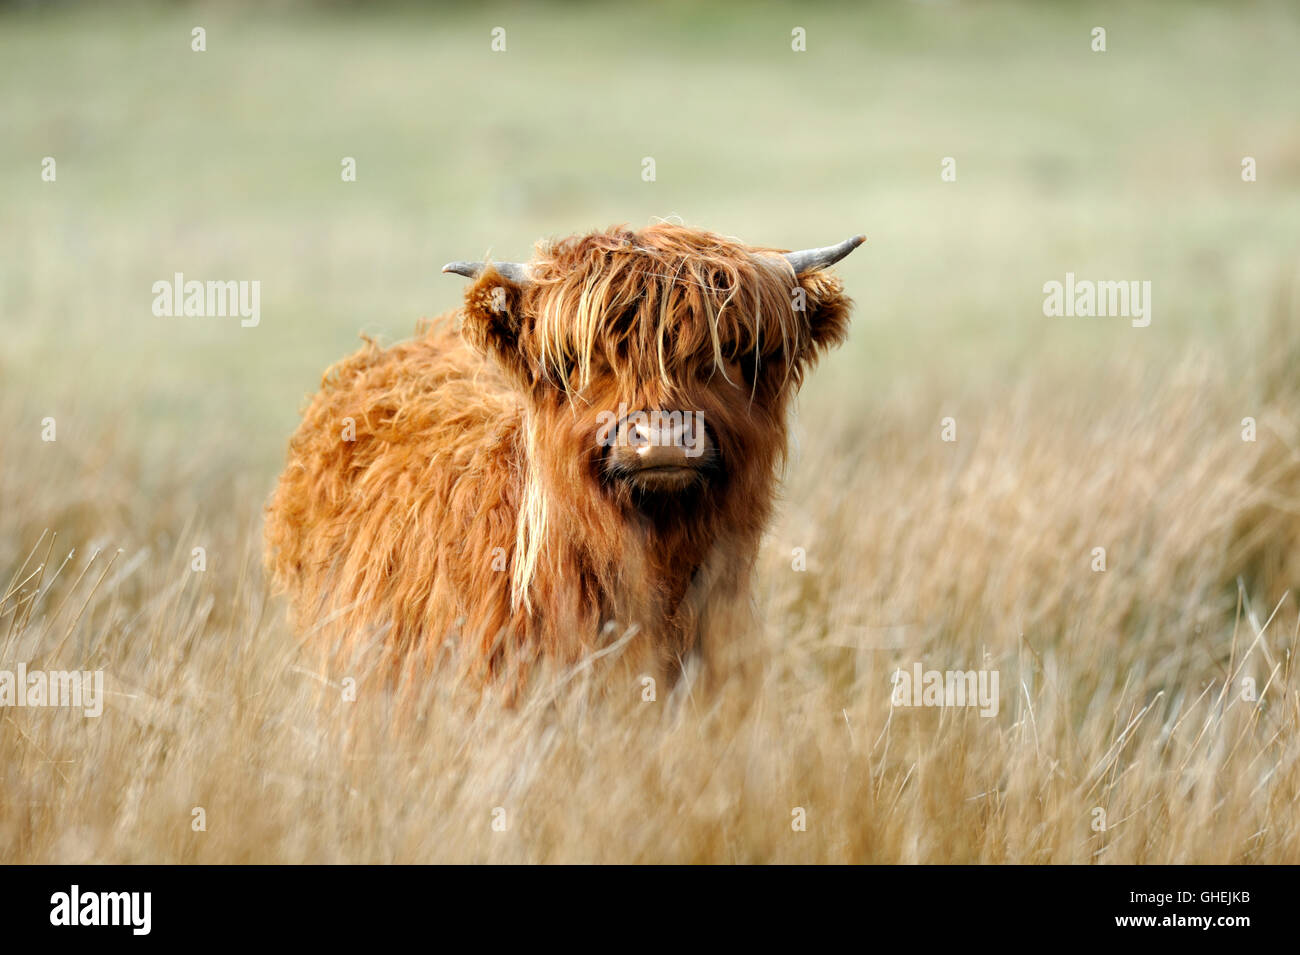 Vache Highland, Scotland, UK Photo Stock